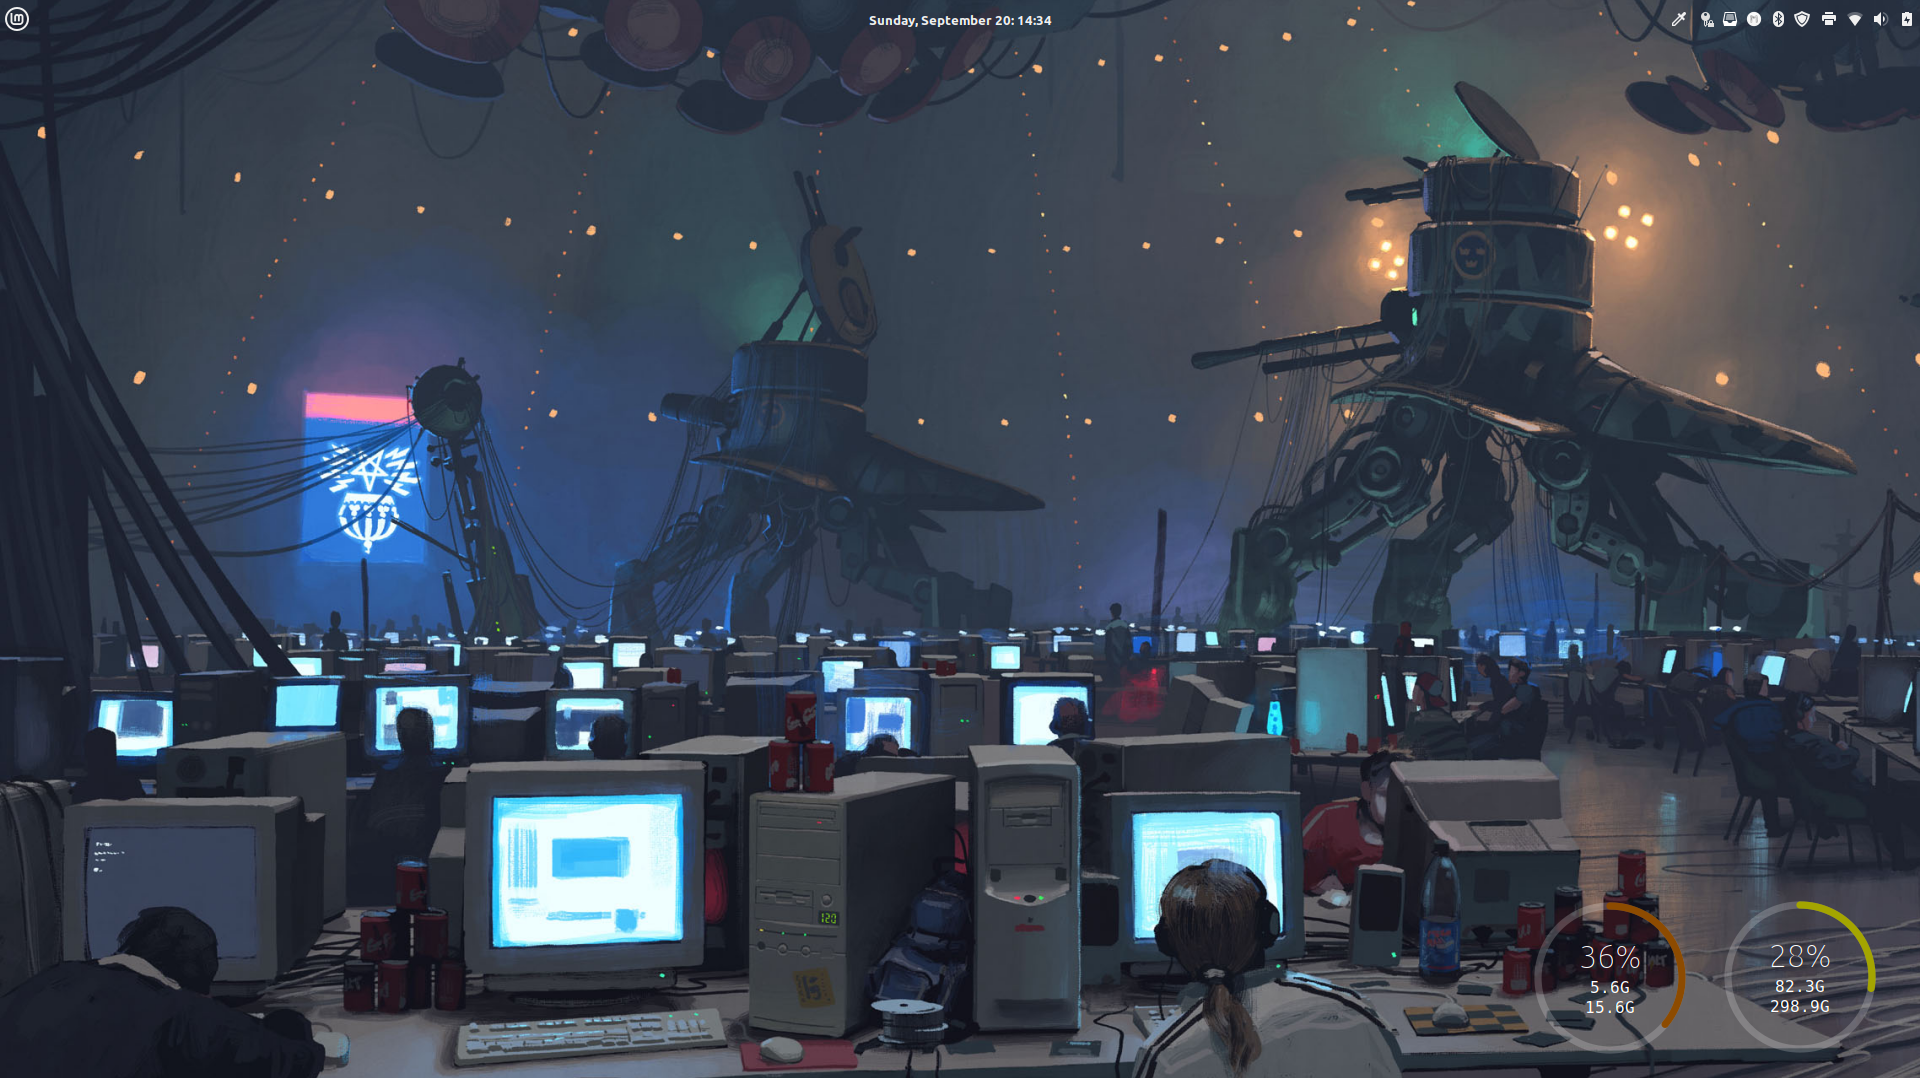 My Cinnamon Desktop - Background image by Simon Stalenhag